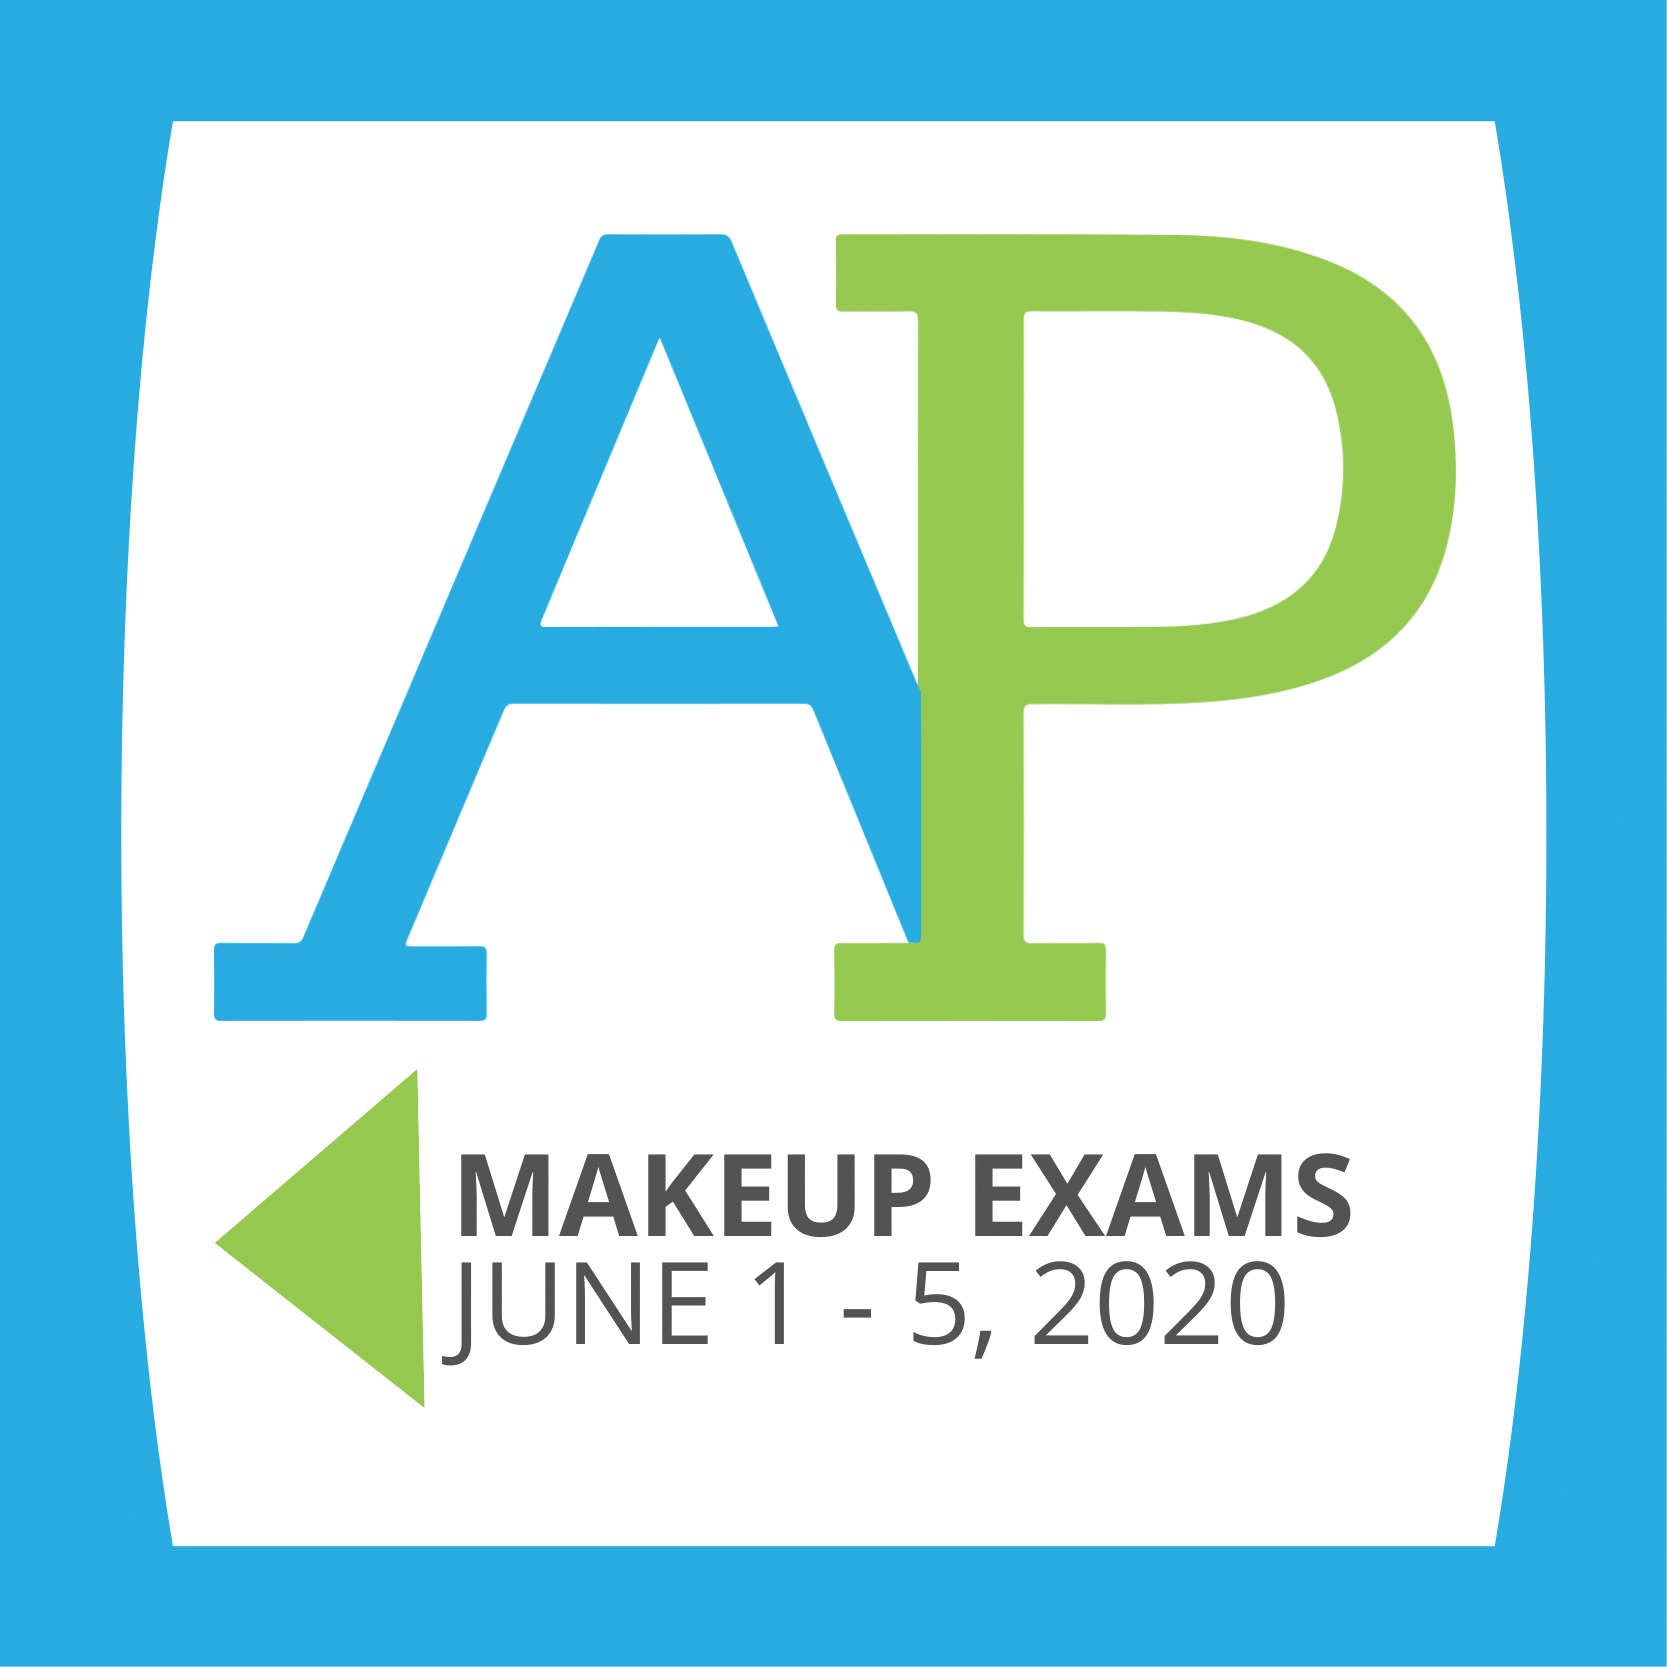 MakeUp AP Exams, June 1 - 5